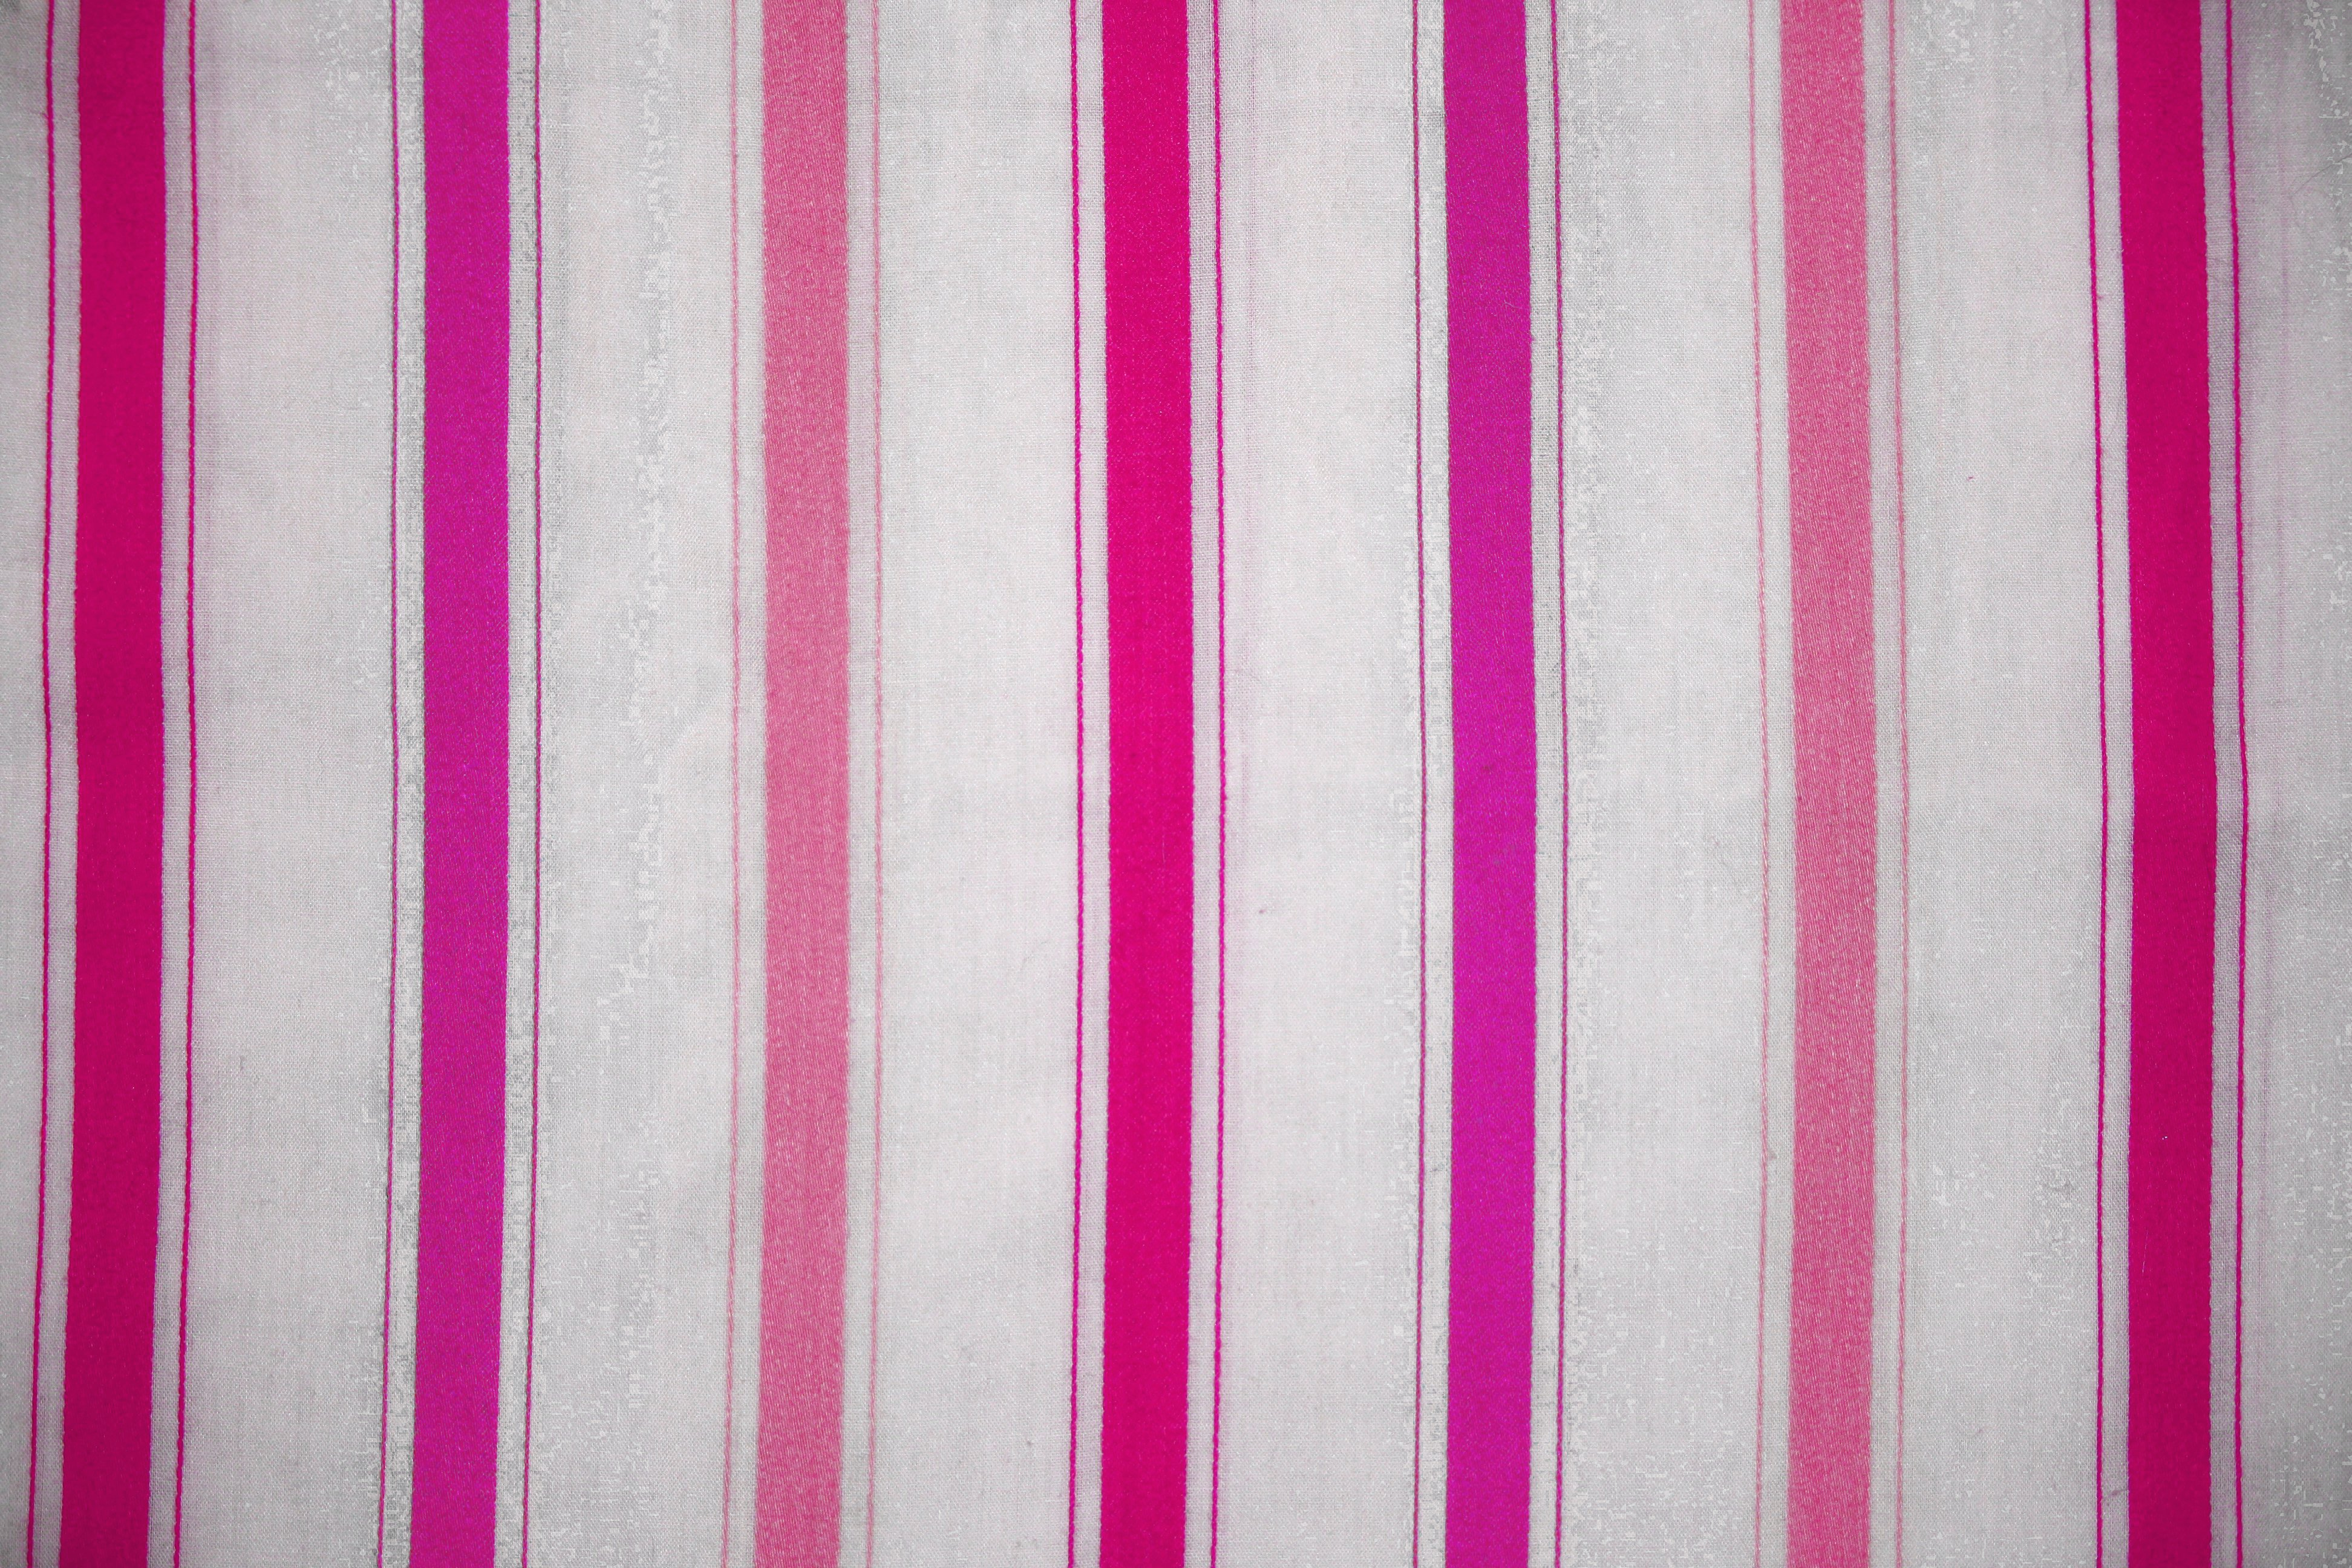 Pink fabric texture free high resolution photo dimensions 3888 - Striped Fabric Texture Pink On White